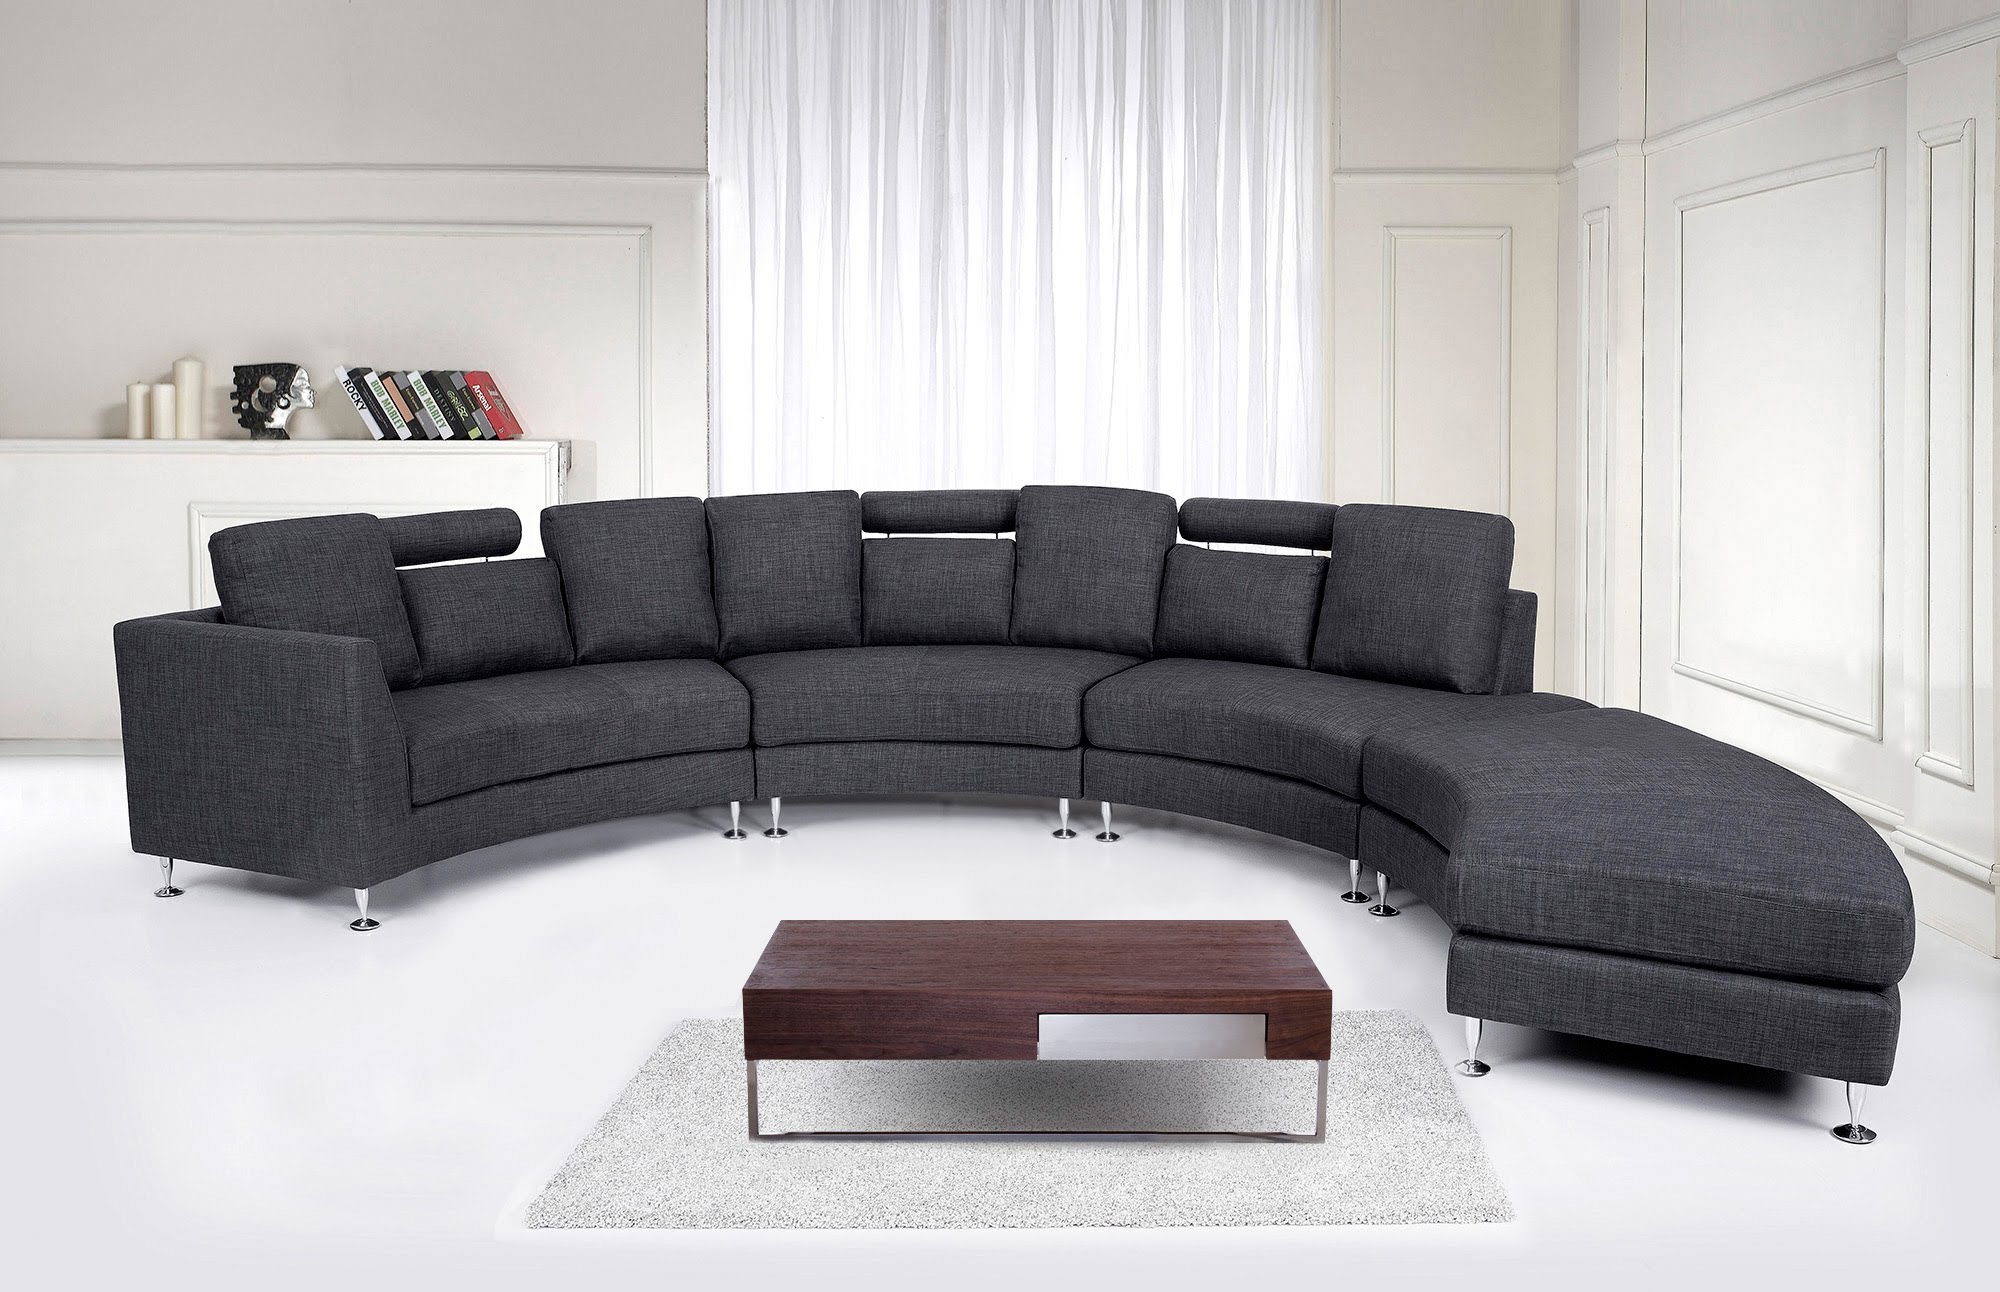 Inspirational Circular Sofa 47 With Additional Sofas and Couches